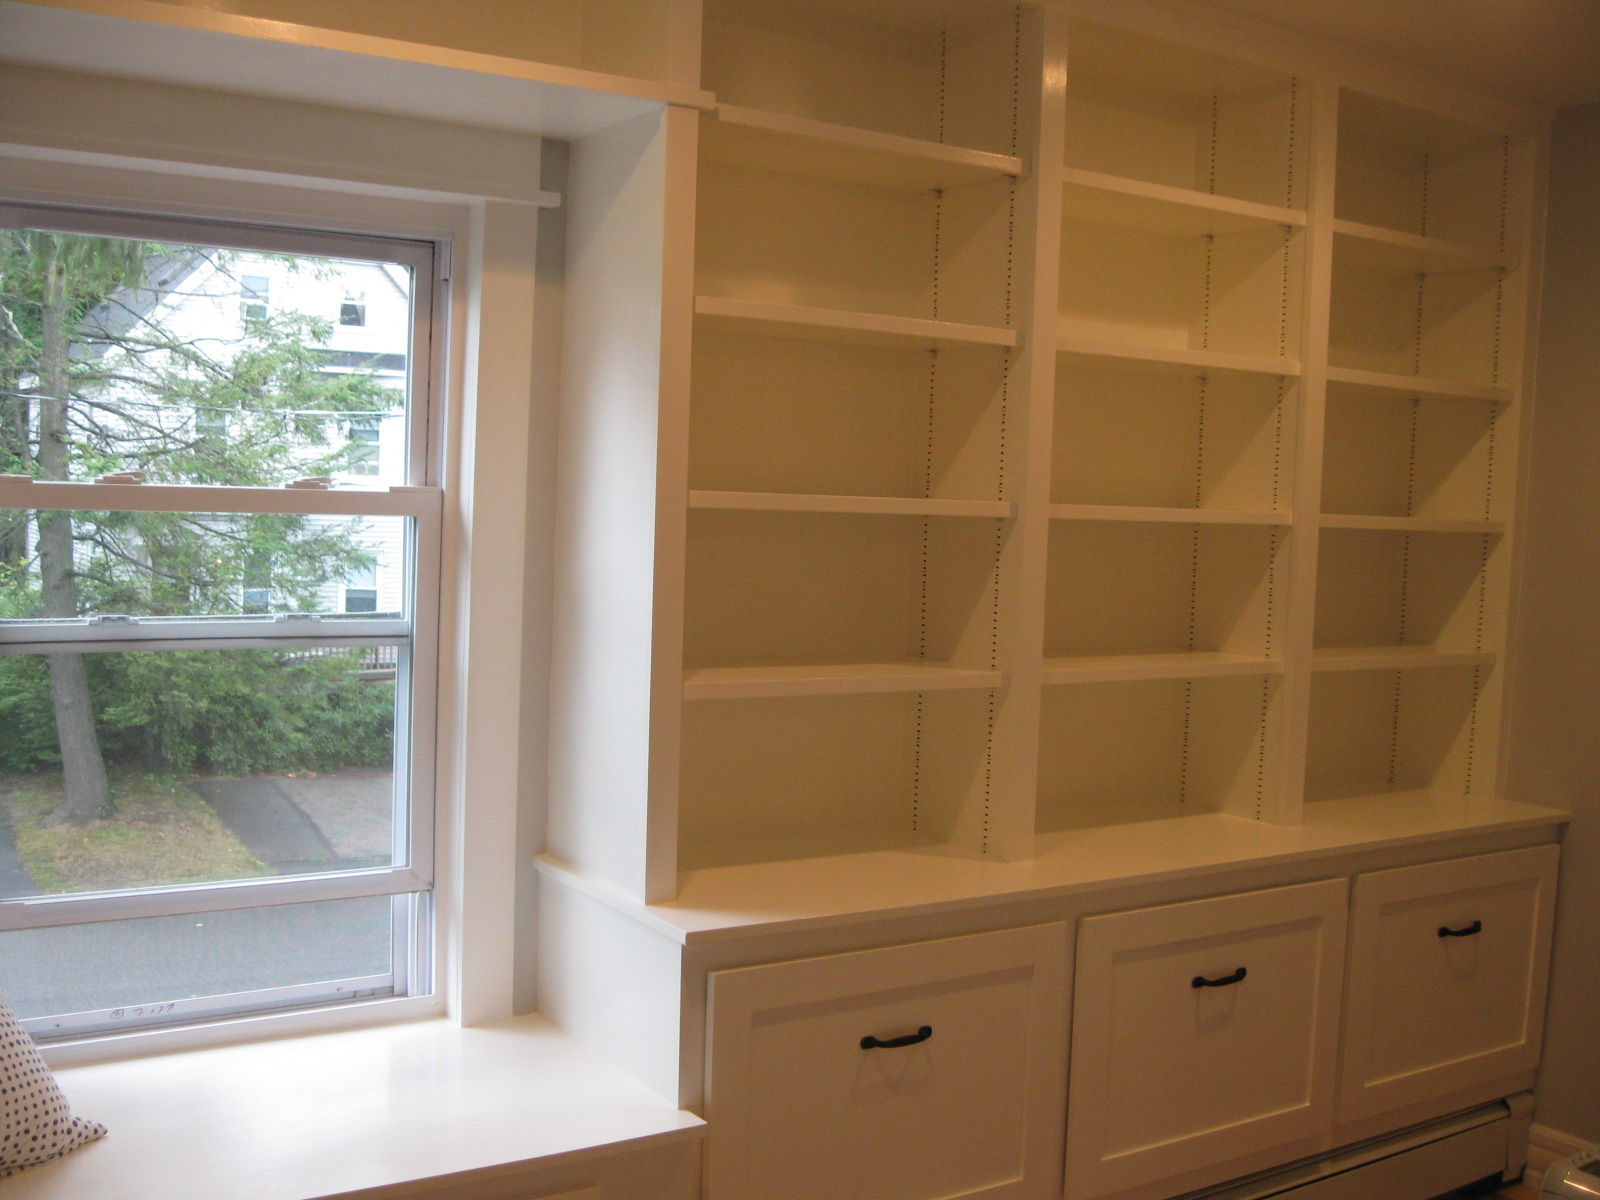 Custom Bookcase and Window Seat BuiltIn  Casper and Company